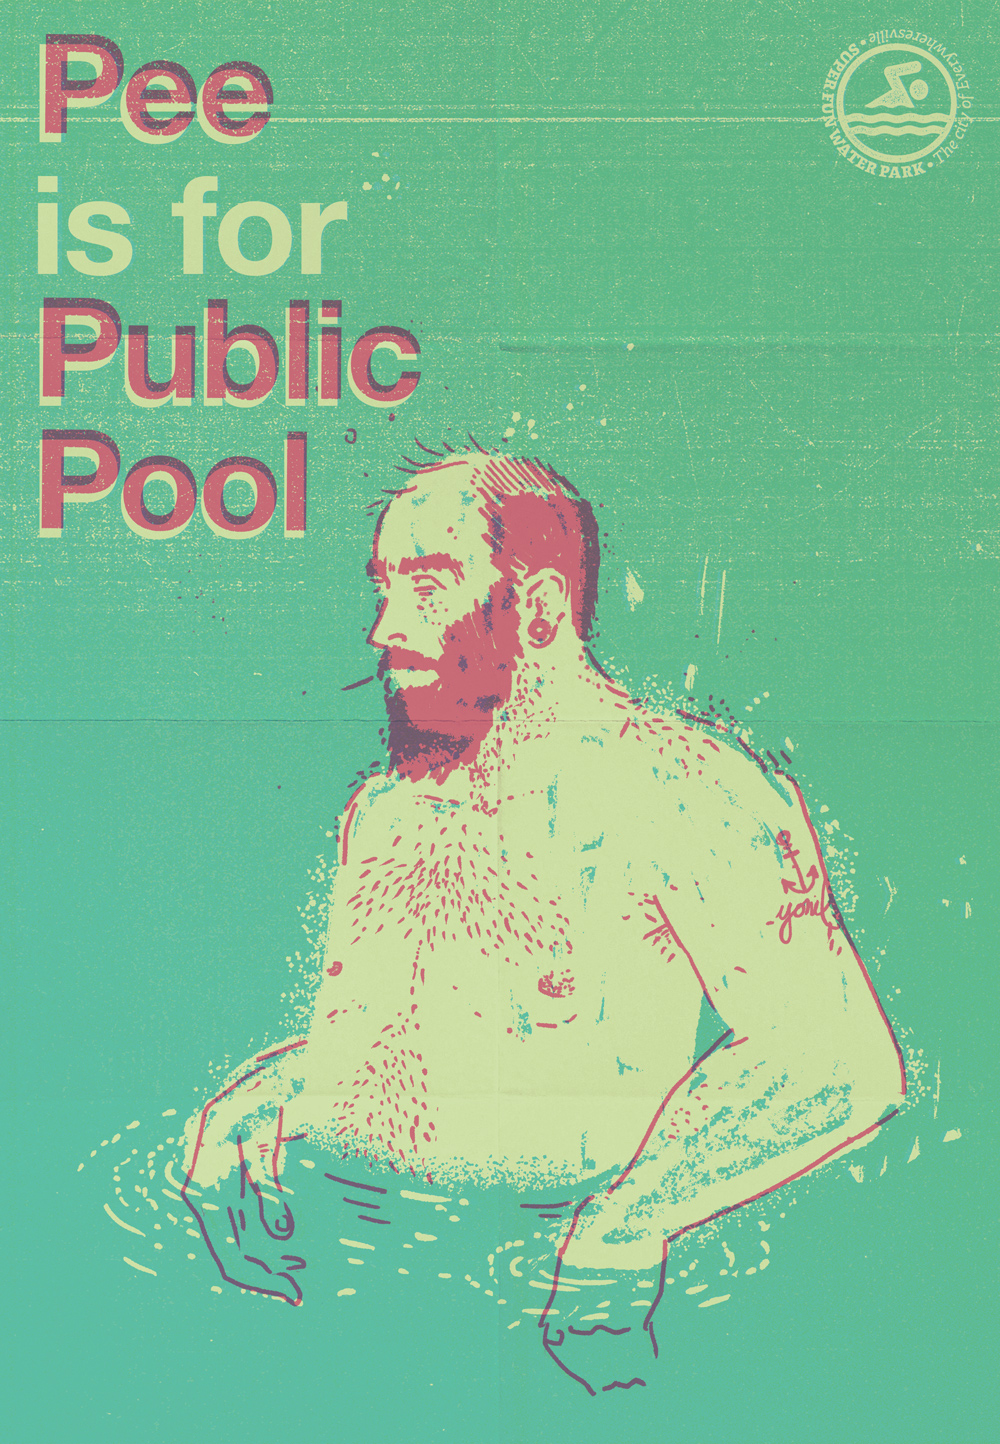 16-YONIL-Pee_is_for_public_pool